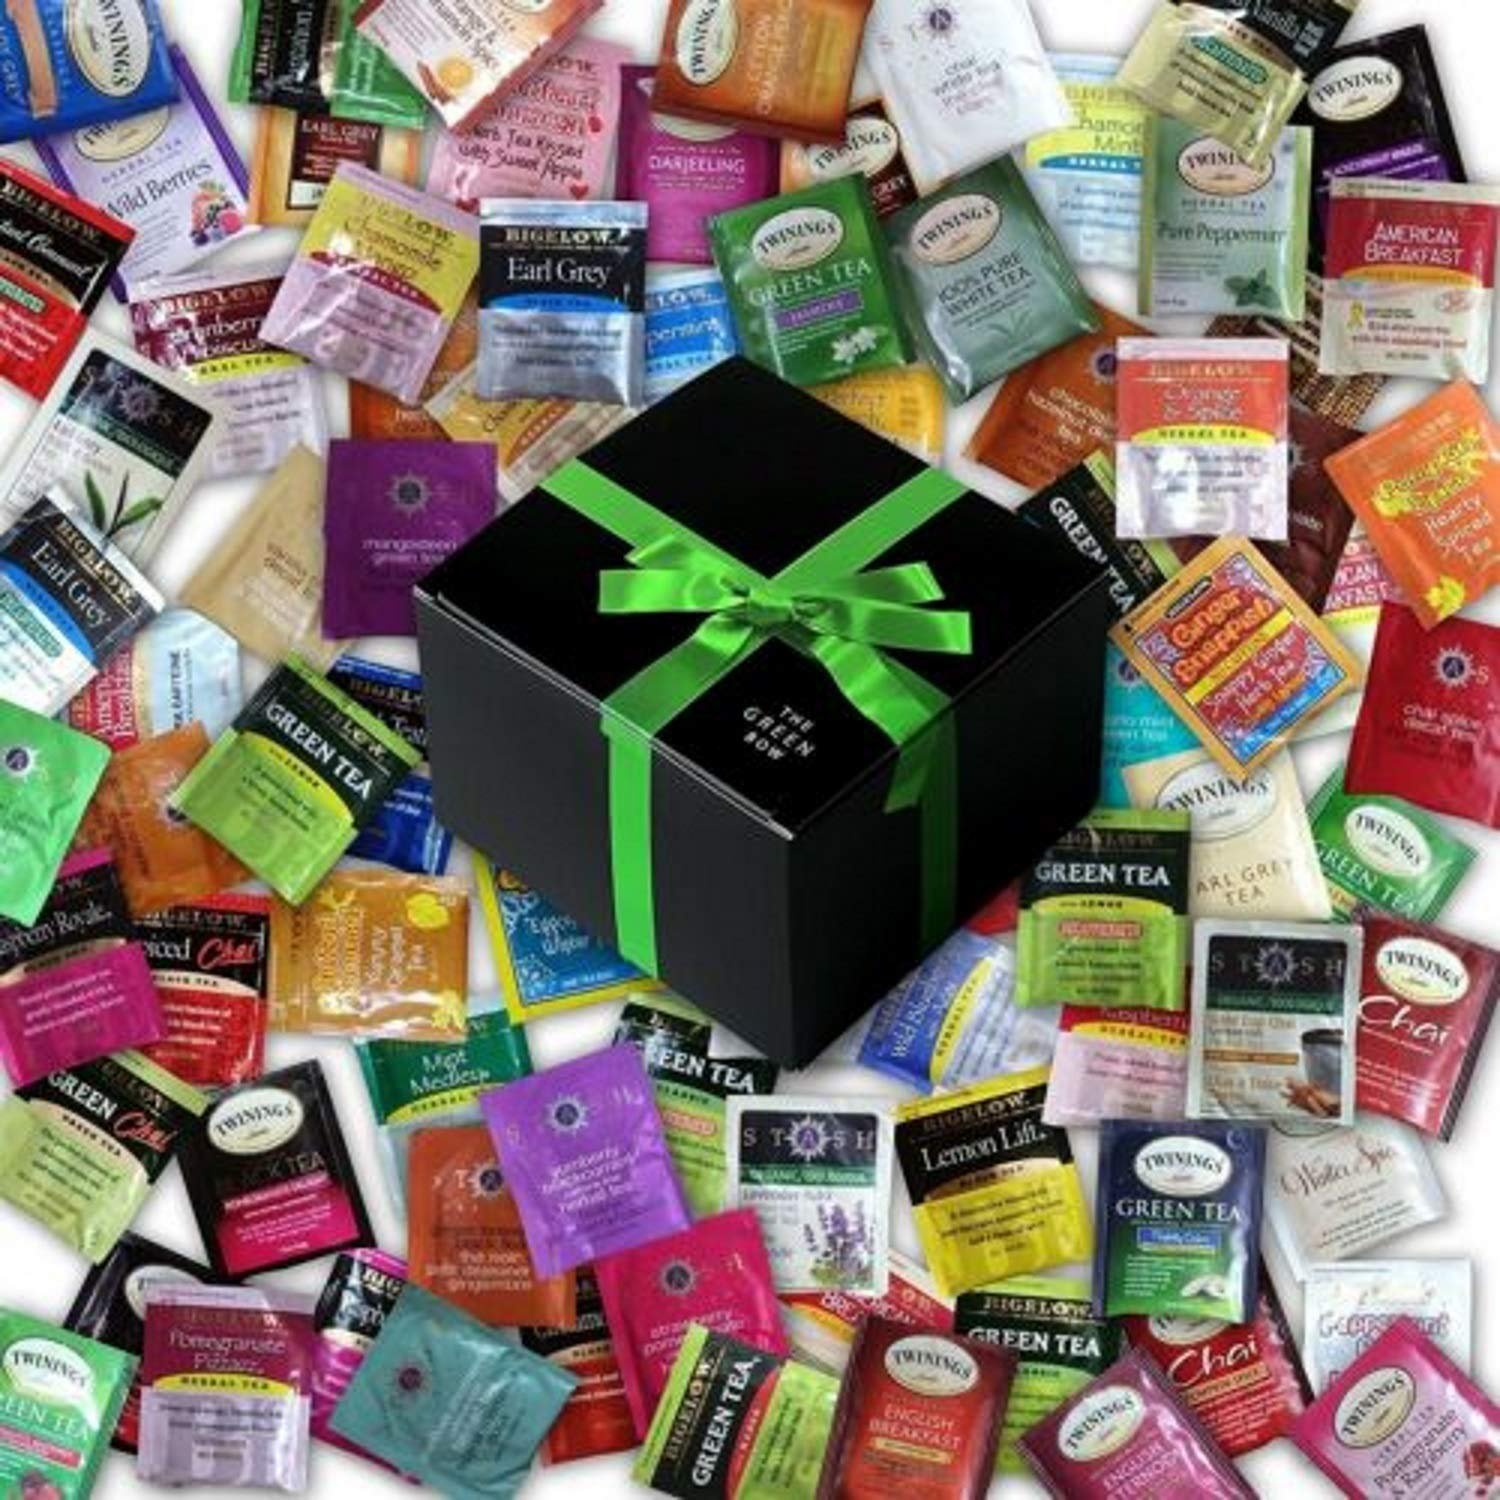 Tea Bags Sampler Assorted Flavors Of Bigelow, Twinings & Stash Teas, Packed In Luxurious Gift Box (60 Count)